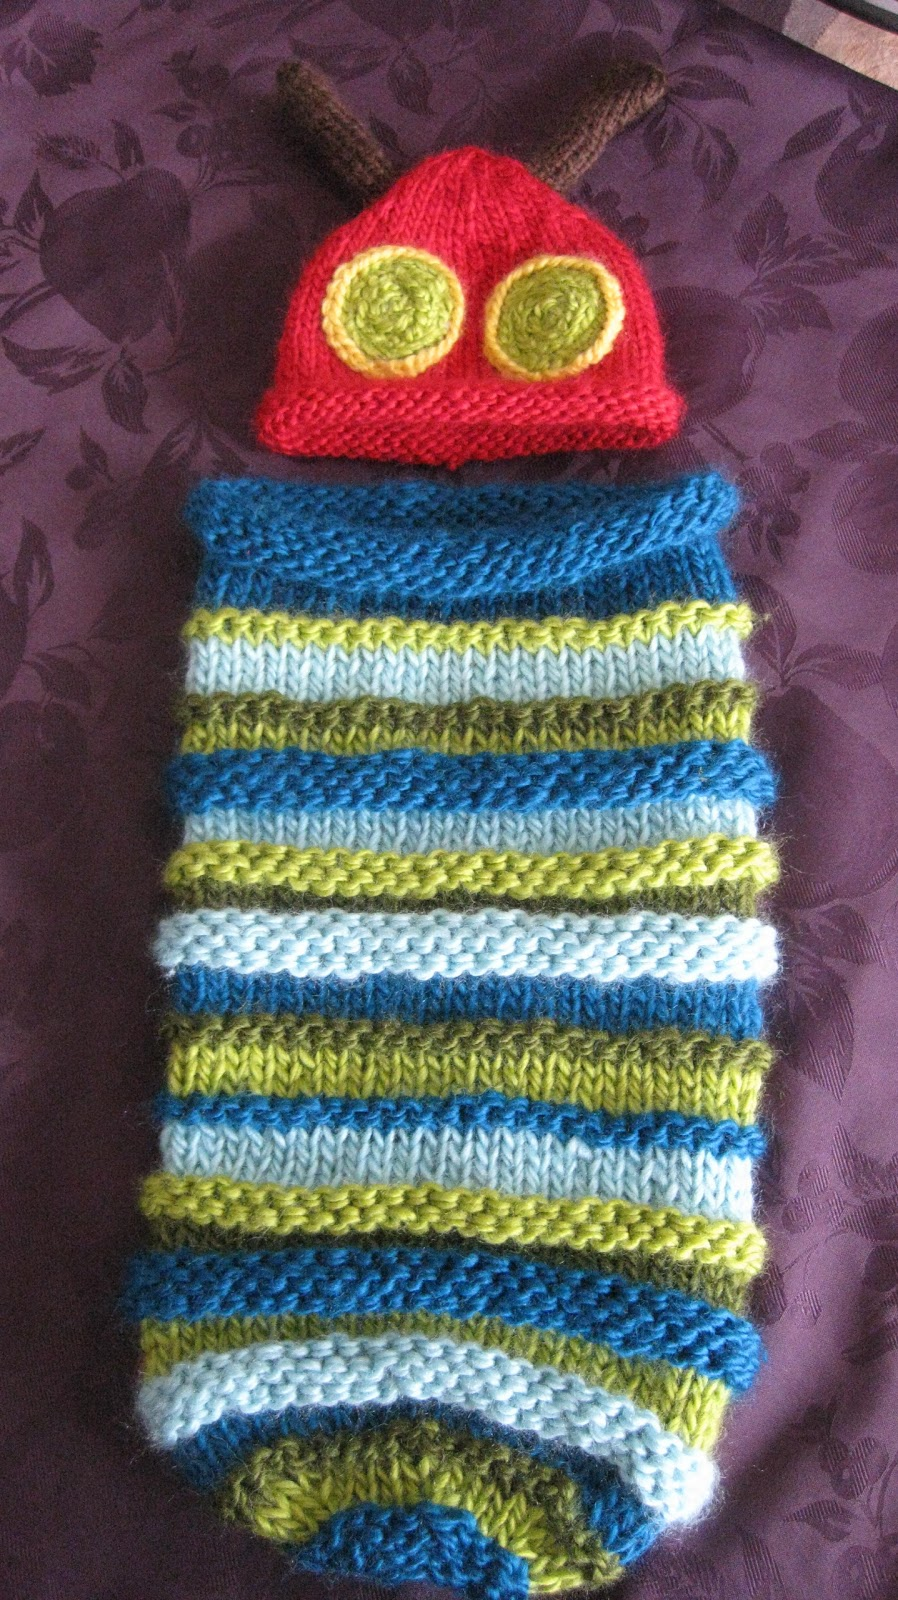 SEWmuchKNITting: Hungry Caterpillar Baby Cocoon and Hat